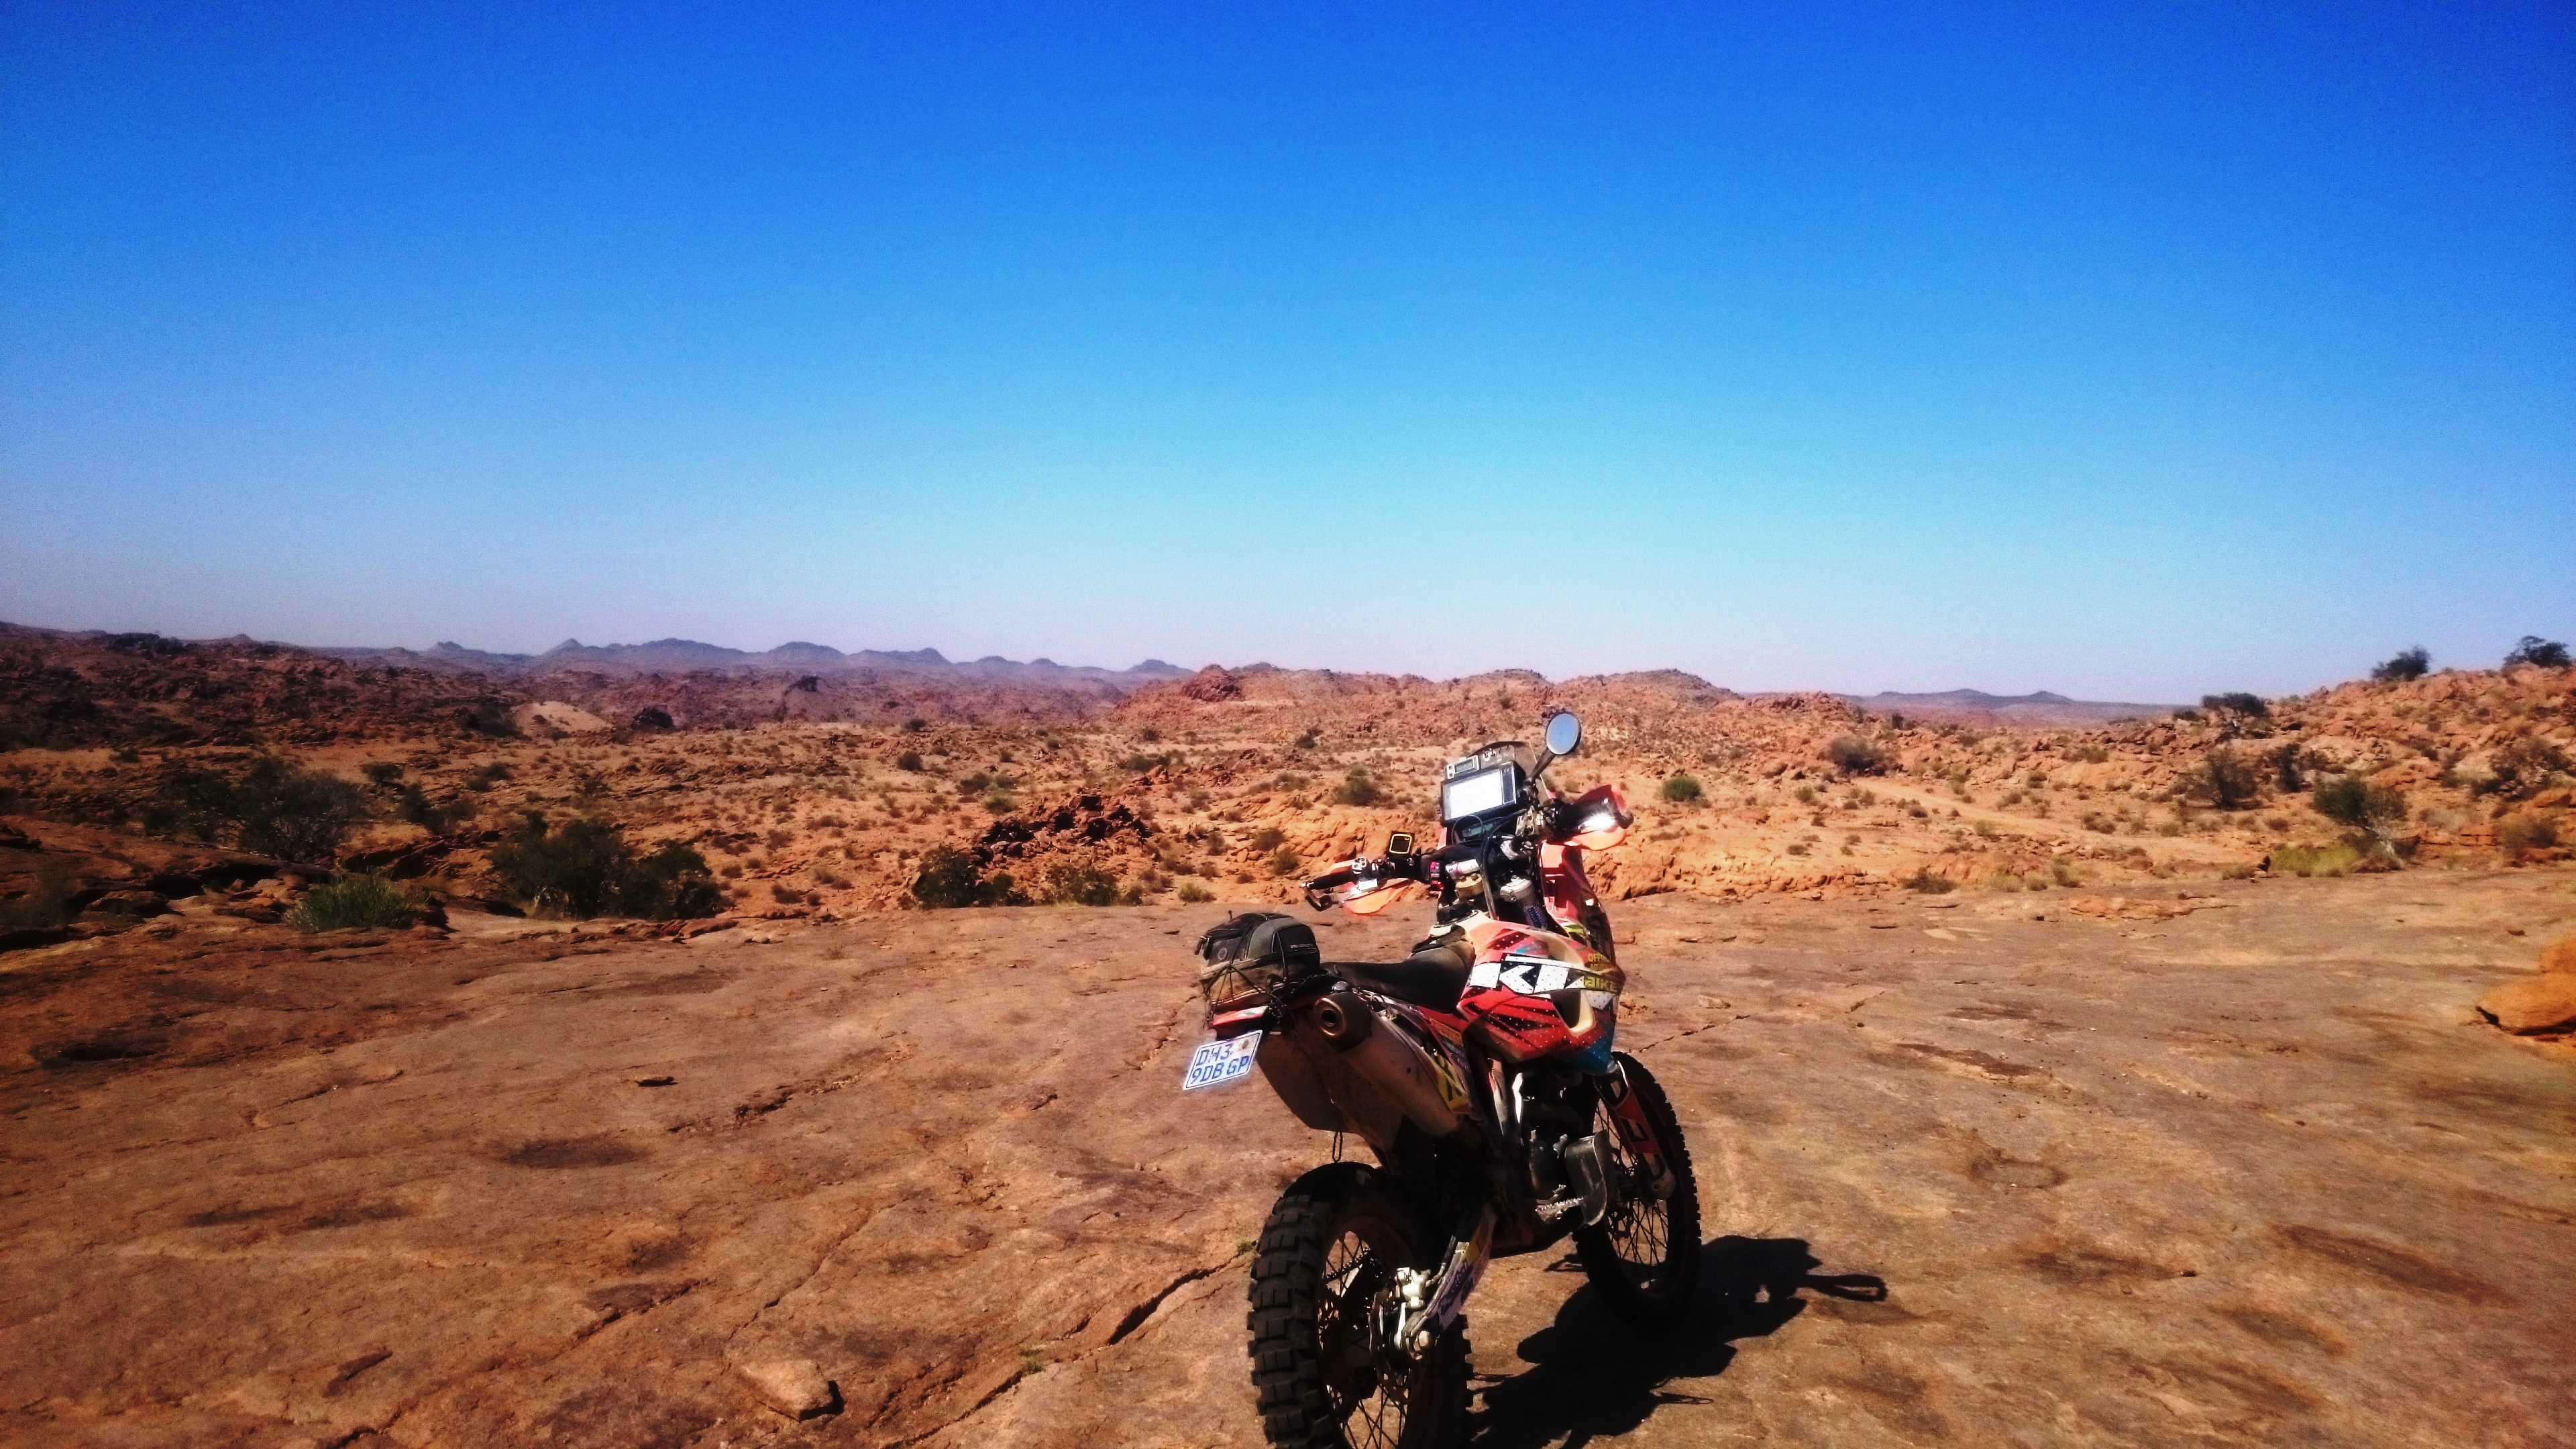 Amageza Rallye: Losing our way & our minds among Sand Monsters & Botswana Daisies